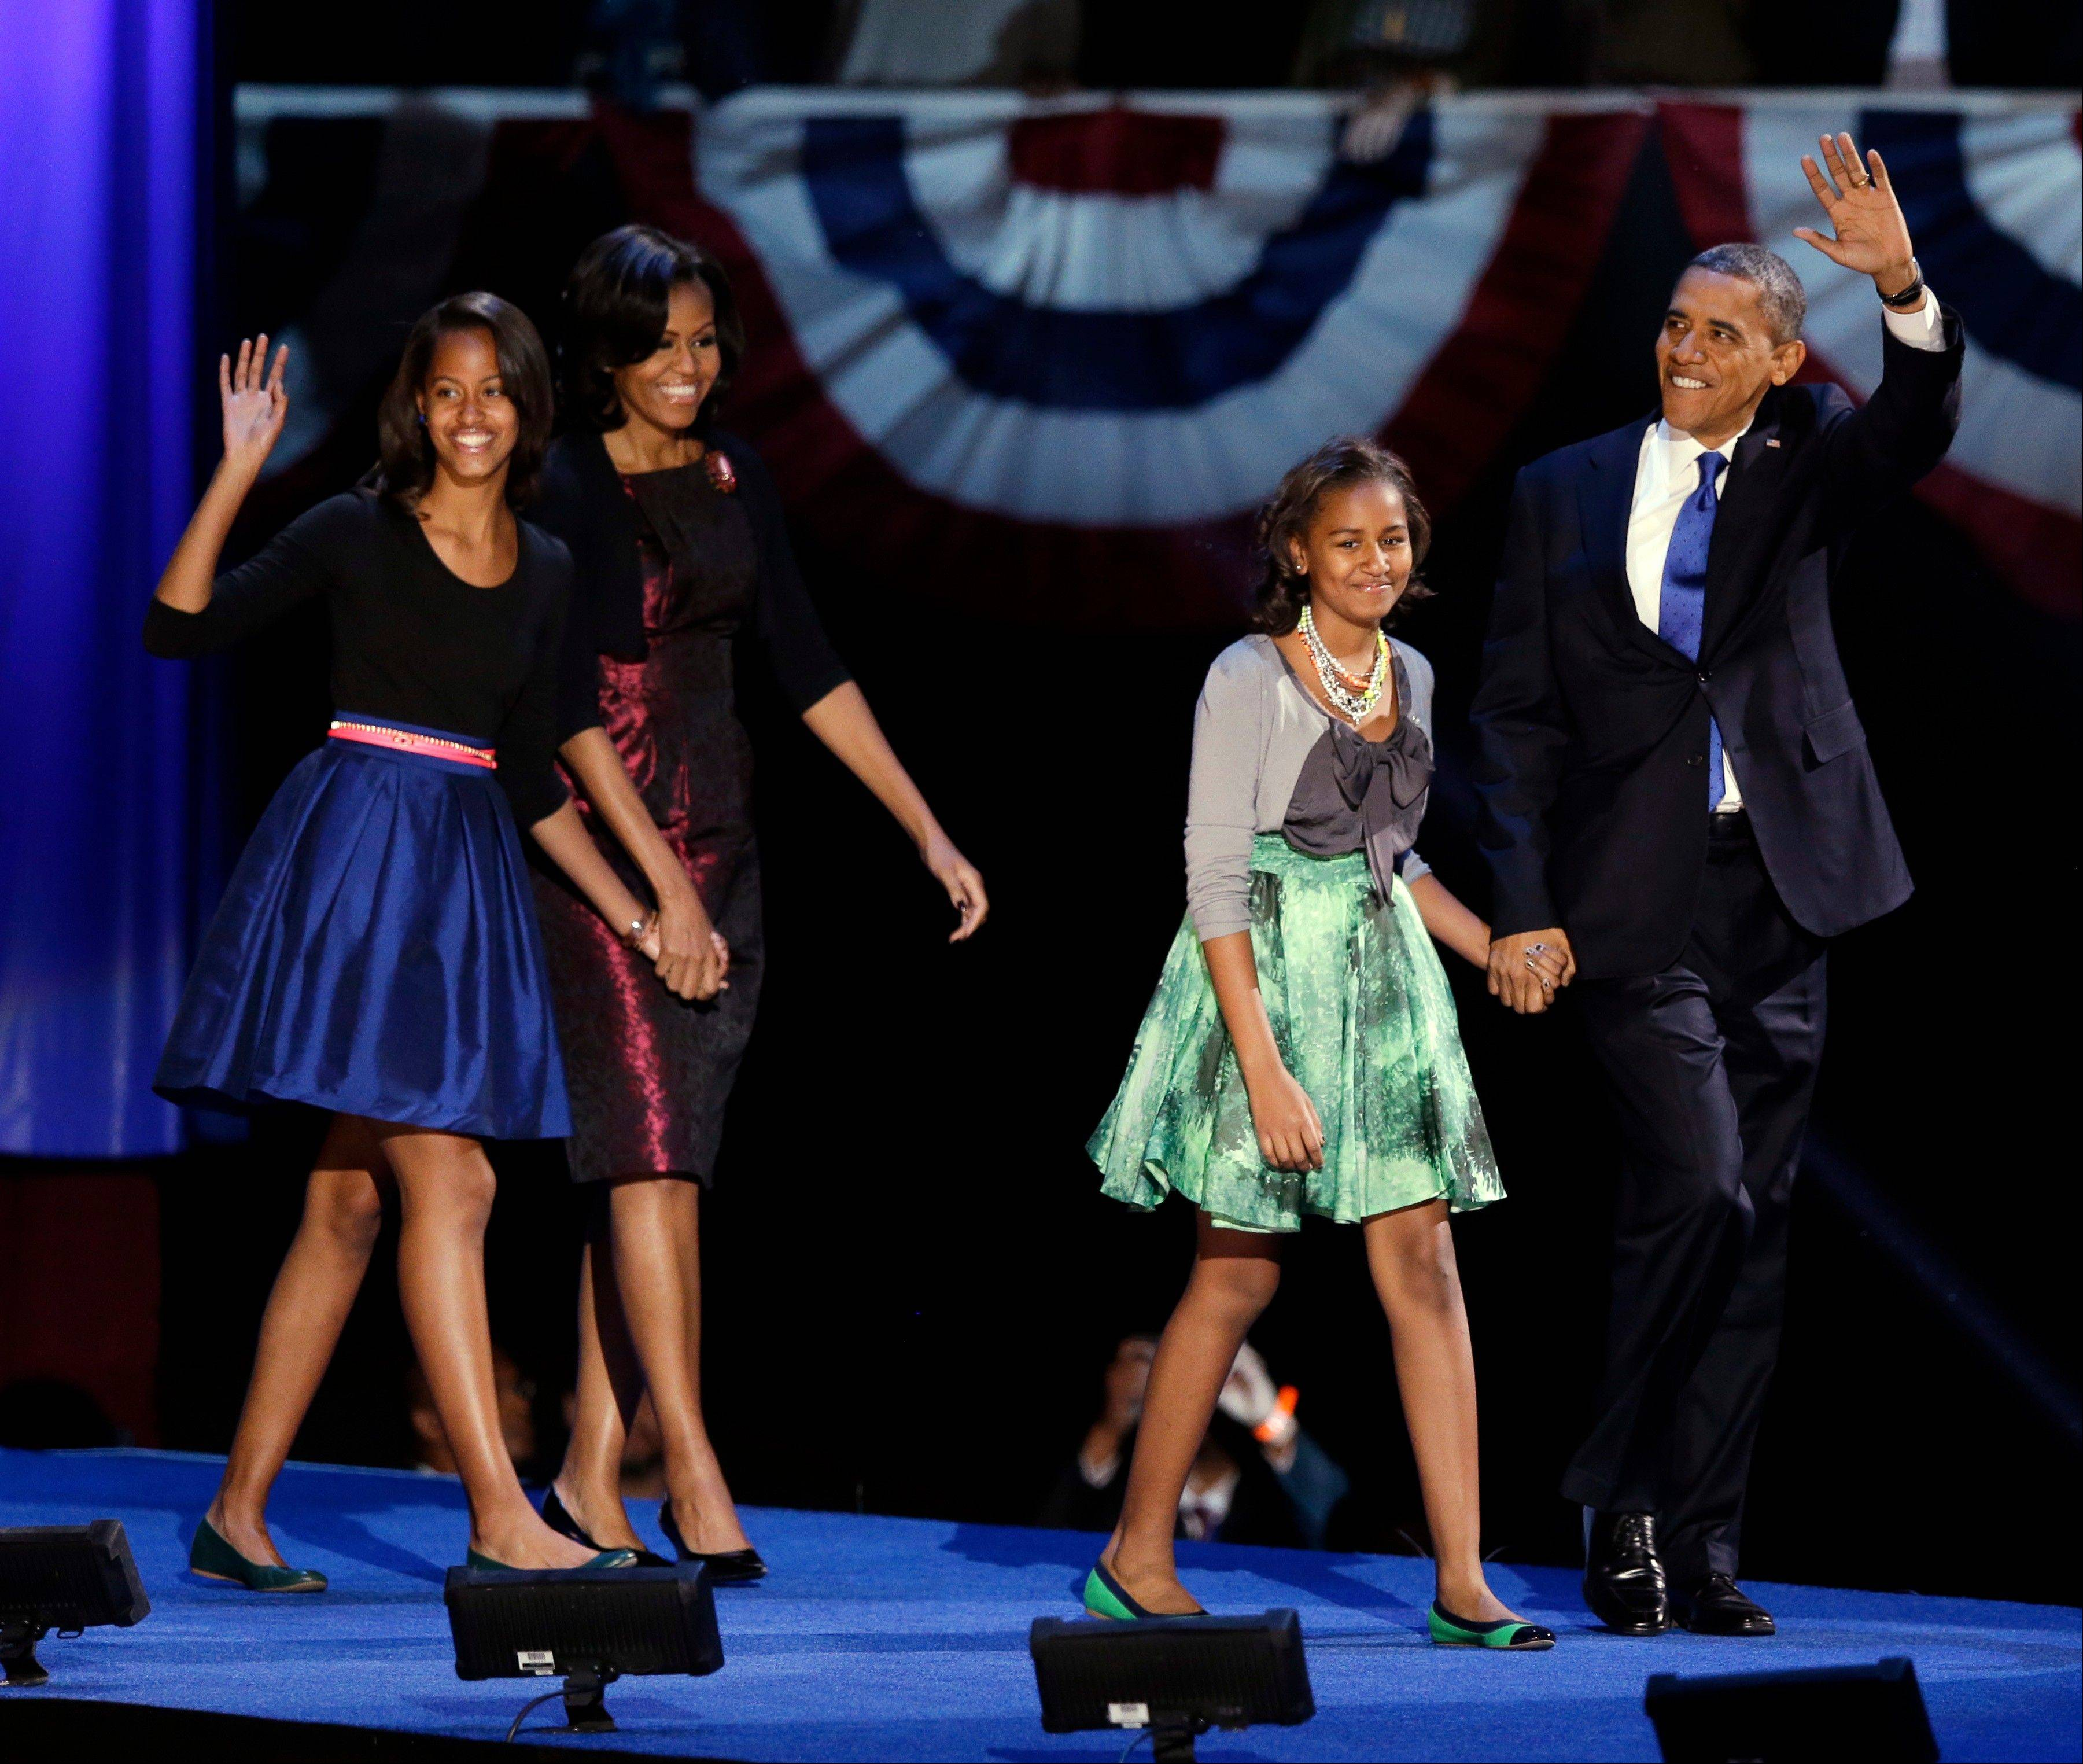 President Barack Obama walks onstage with first lady Michelle Obama and daughters Malia and Sasha at his Election Night party Wednesday in Chicago.